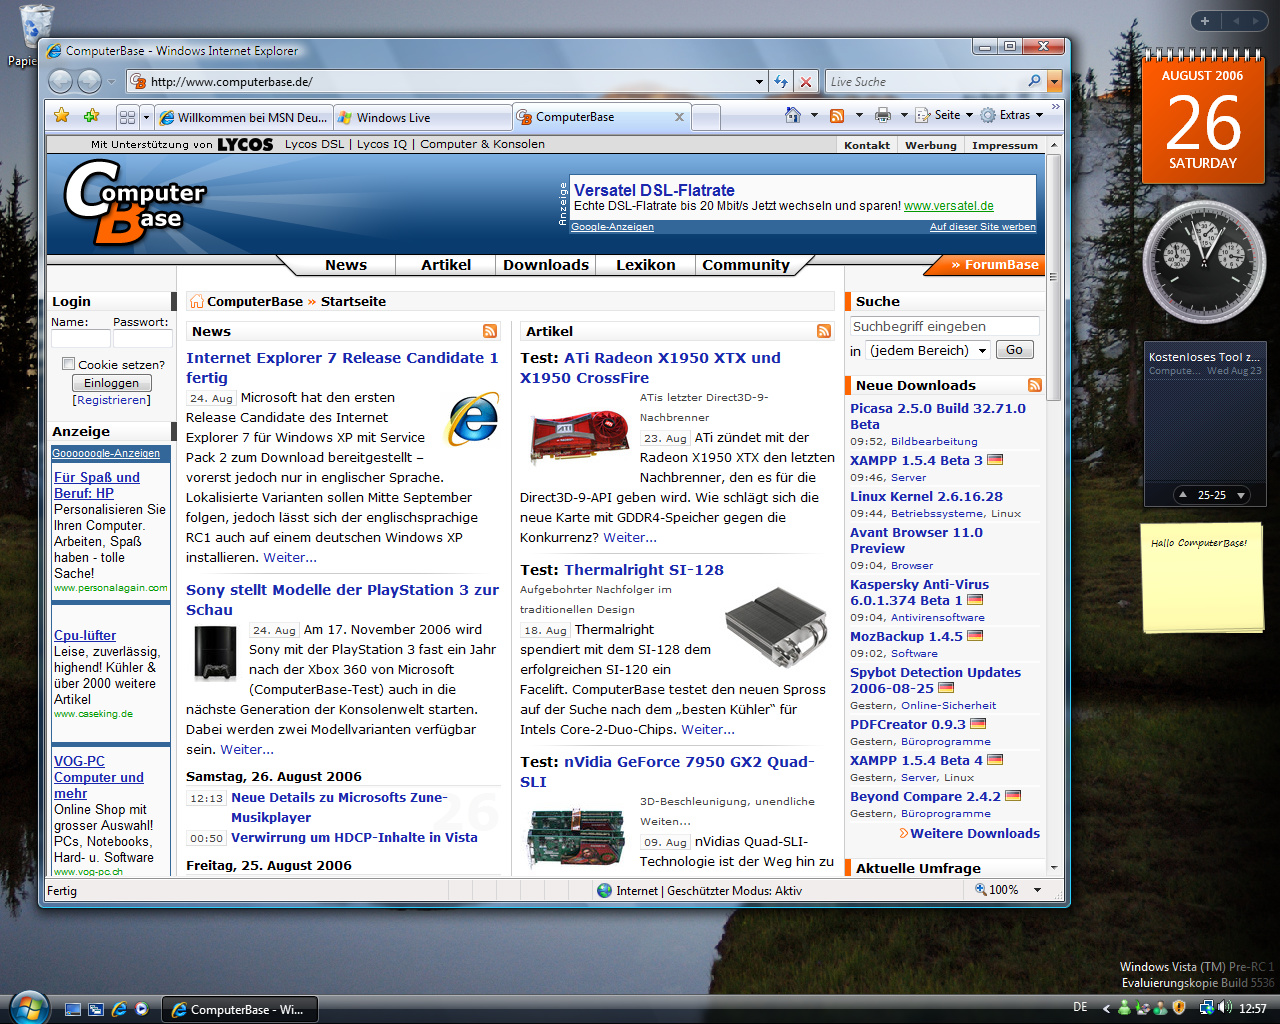 Windows Vista Build 5536 - Internet Explorer 7.0